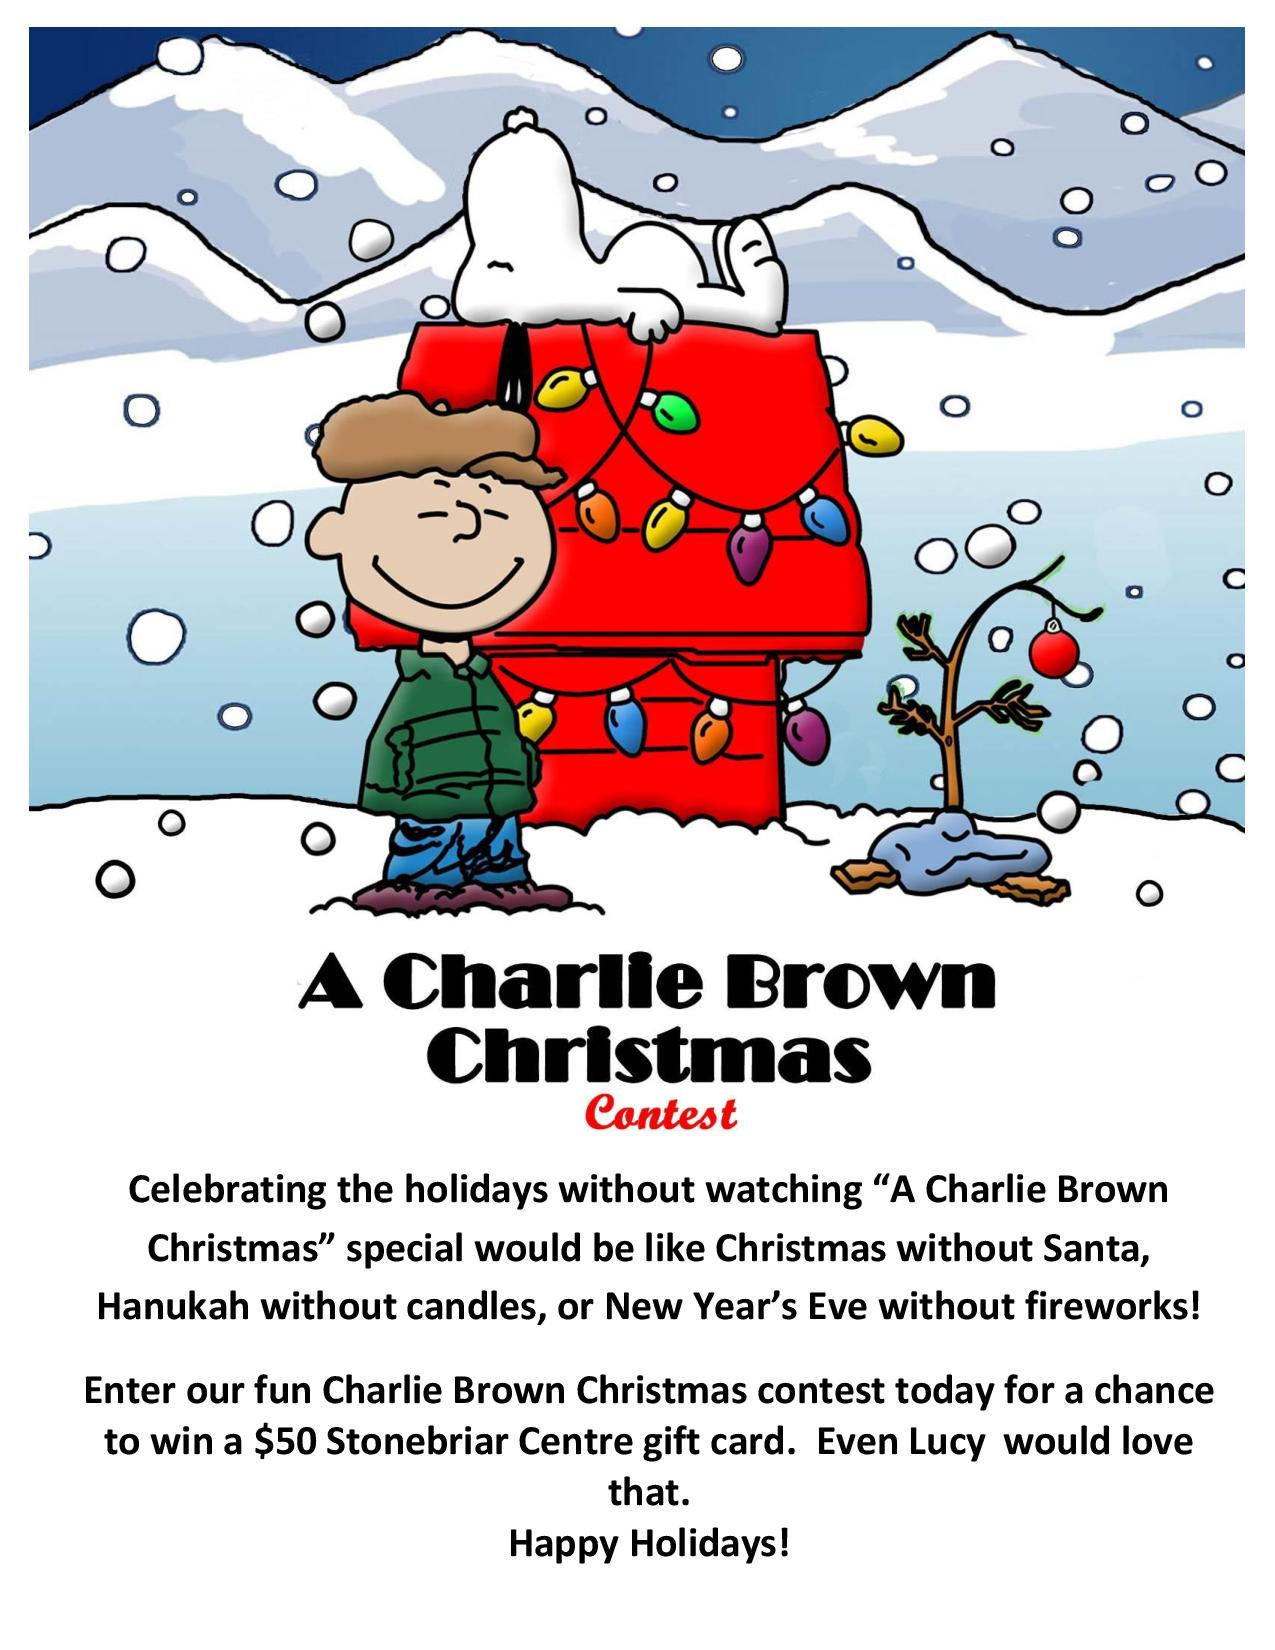 A Charlie Brown Christmas Contest!